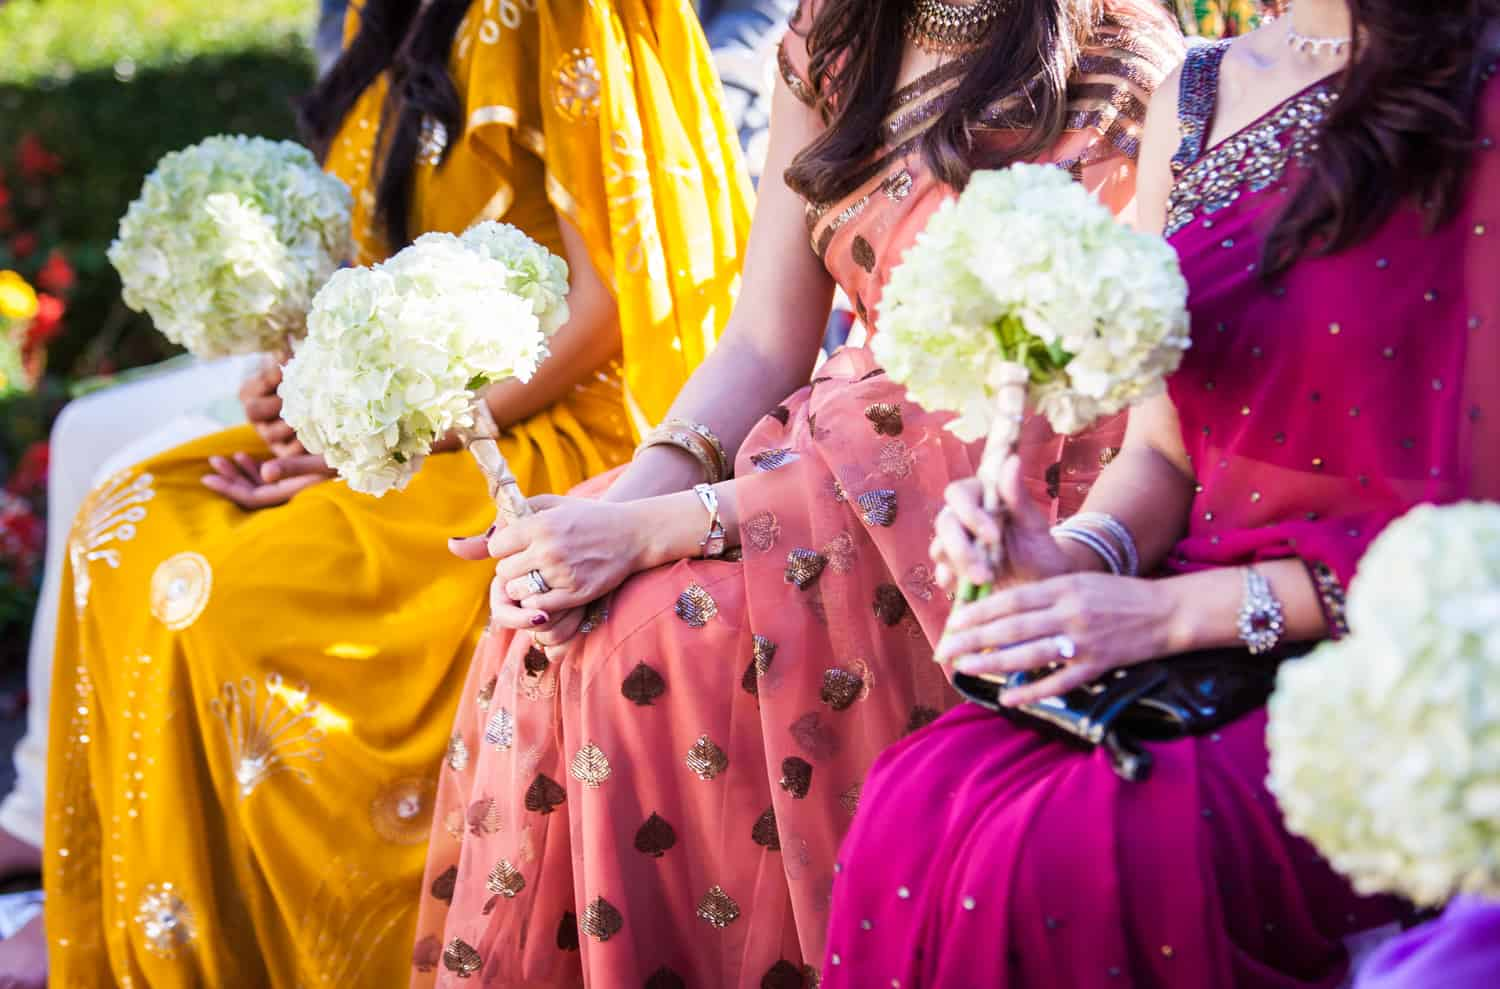 Close up on bridesmaids wearing colorful saris and holding bouquets